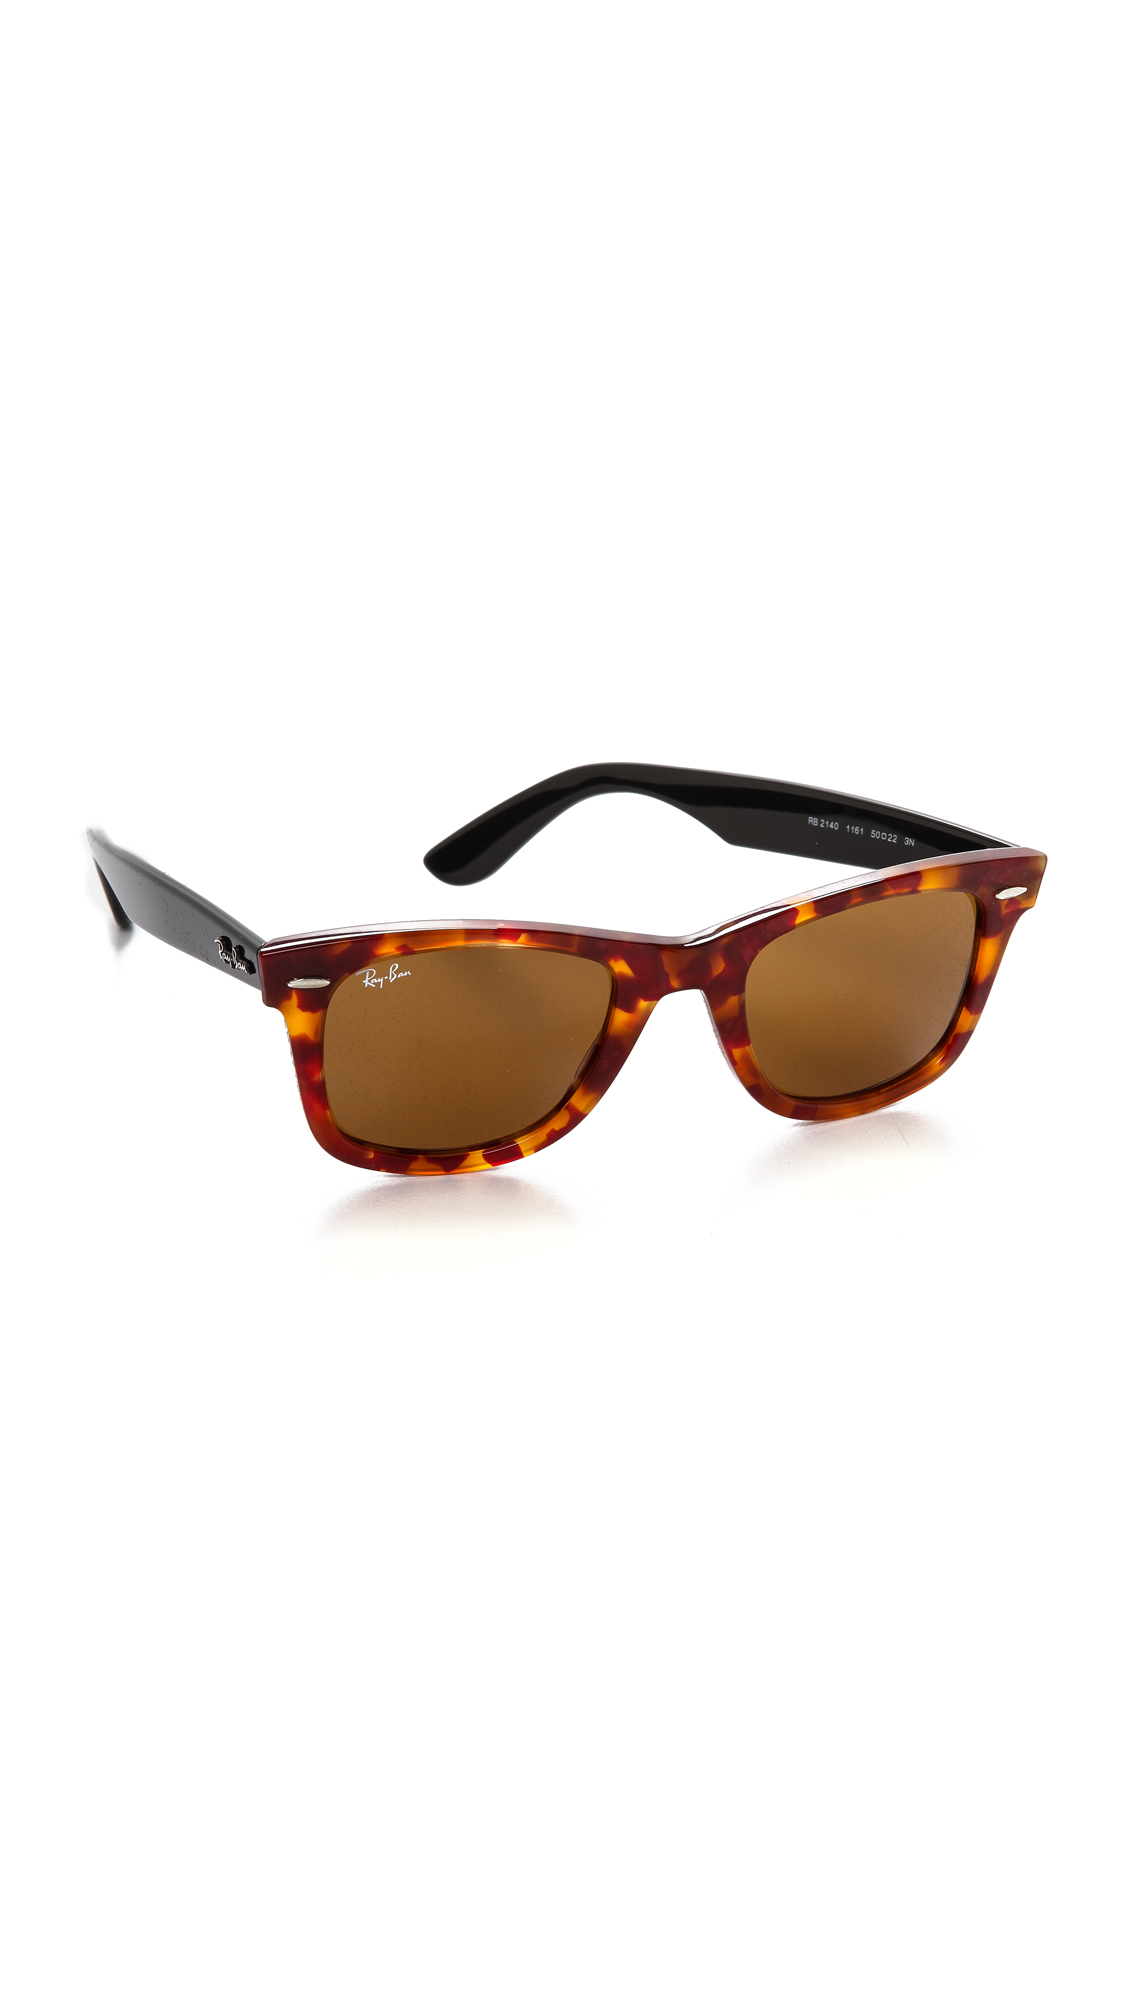 Lyst - Ray-Ban Icons Wayfarer Sunglasses - Spotted Red